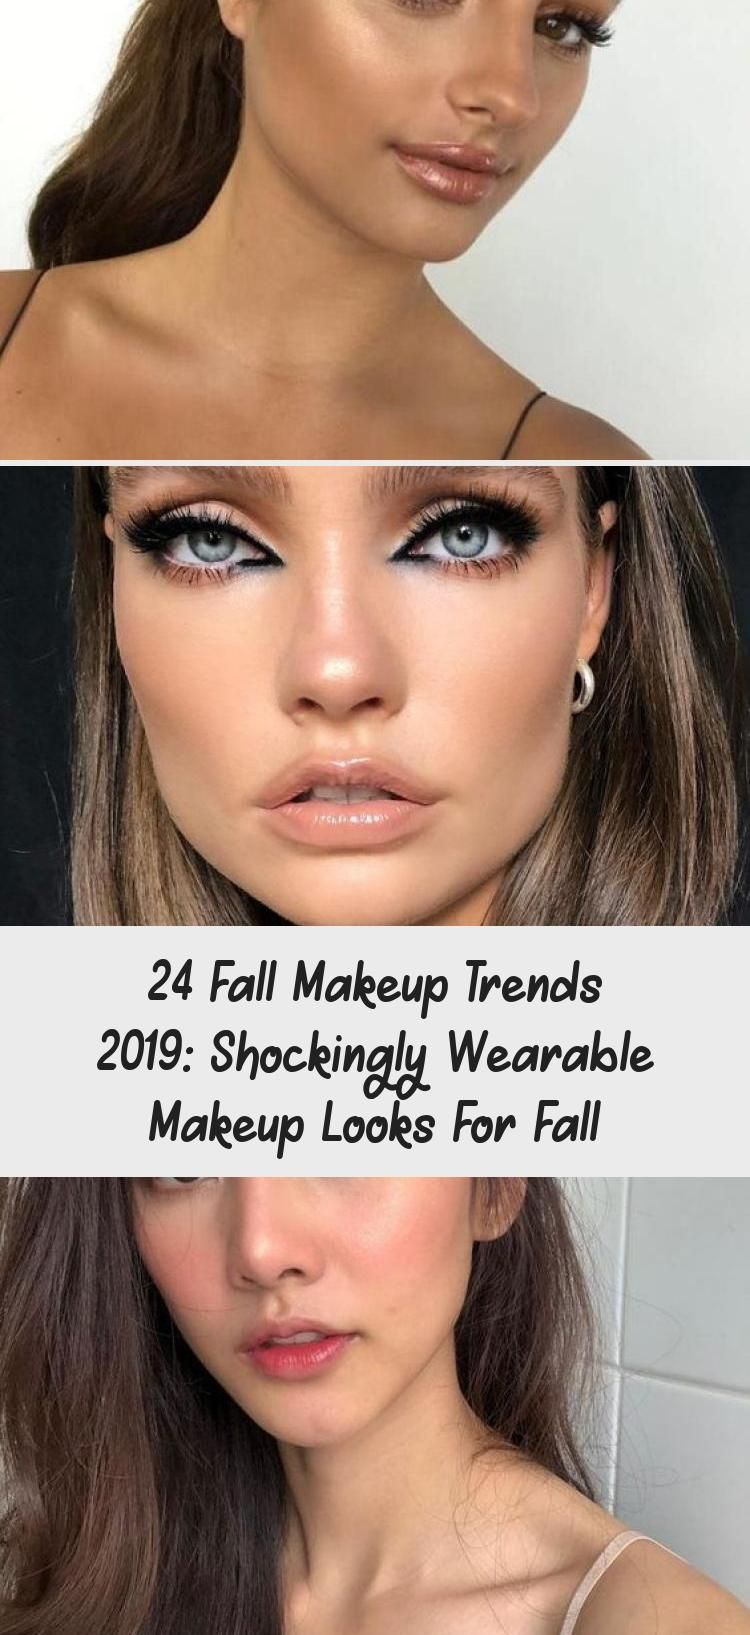 Photo of 24 Fall Makeup Trends 2019: Shockingly Wearable Makeup Looks For Fall – Eye Makeup